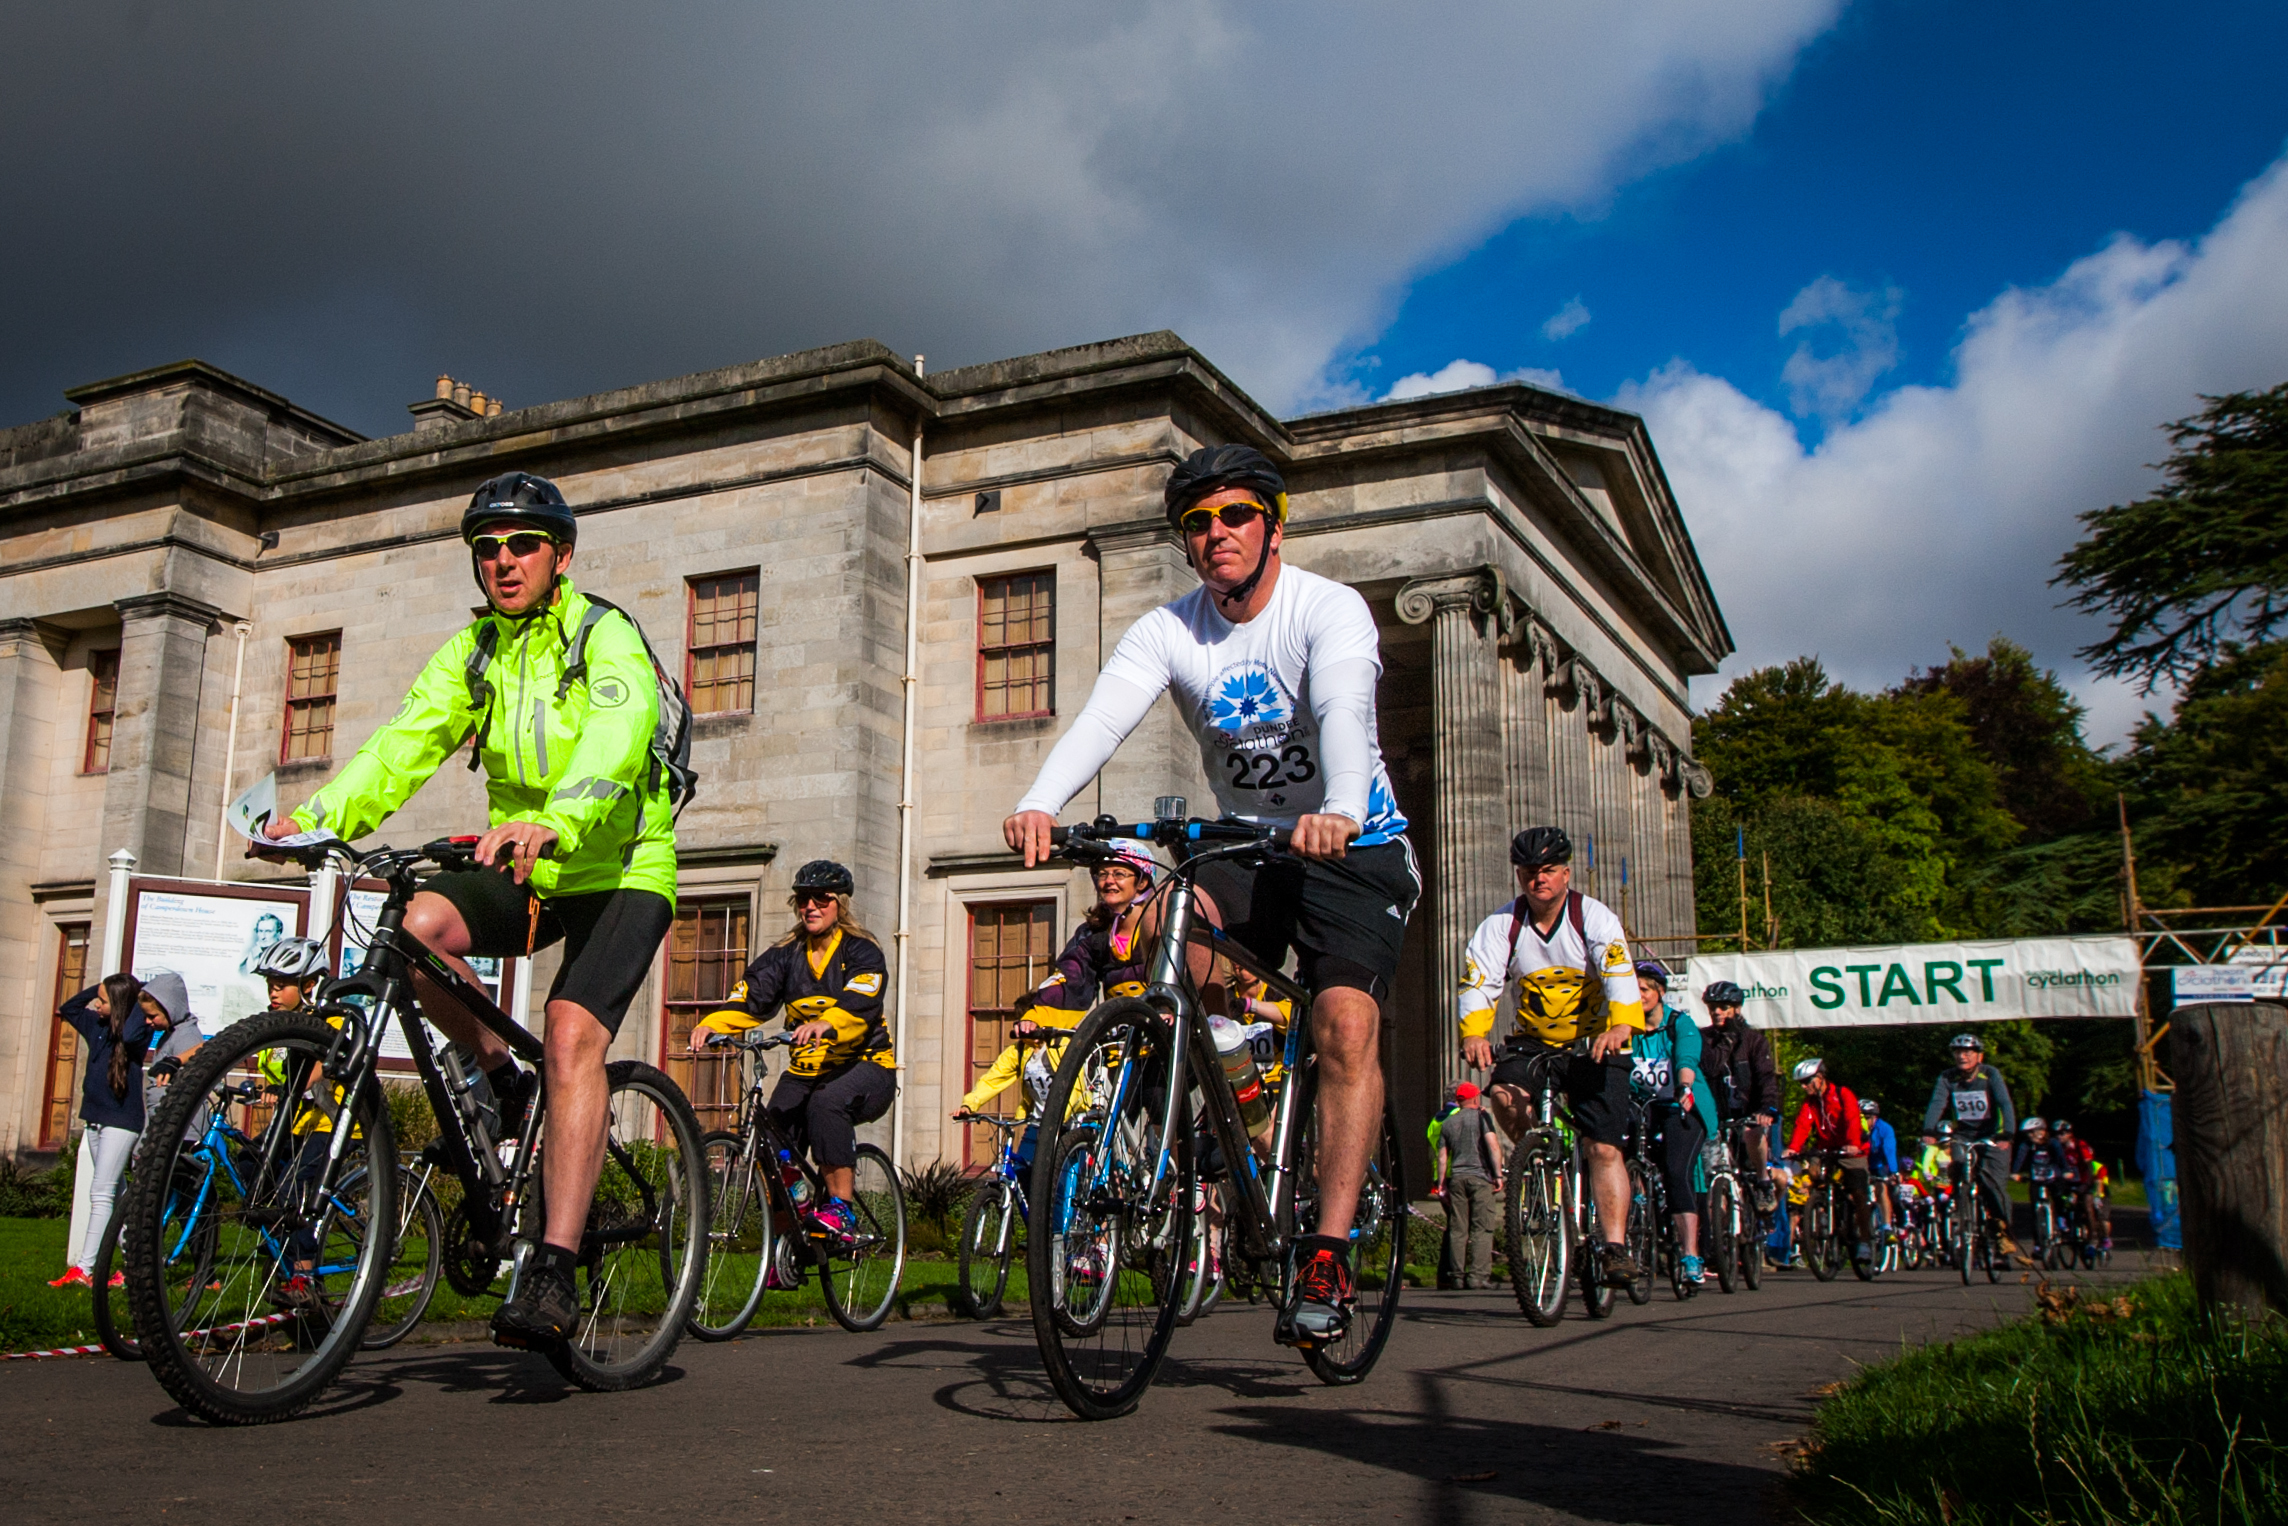 Competitors taking part in last year's Cyclathon.